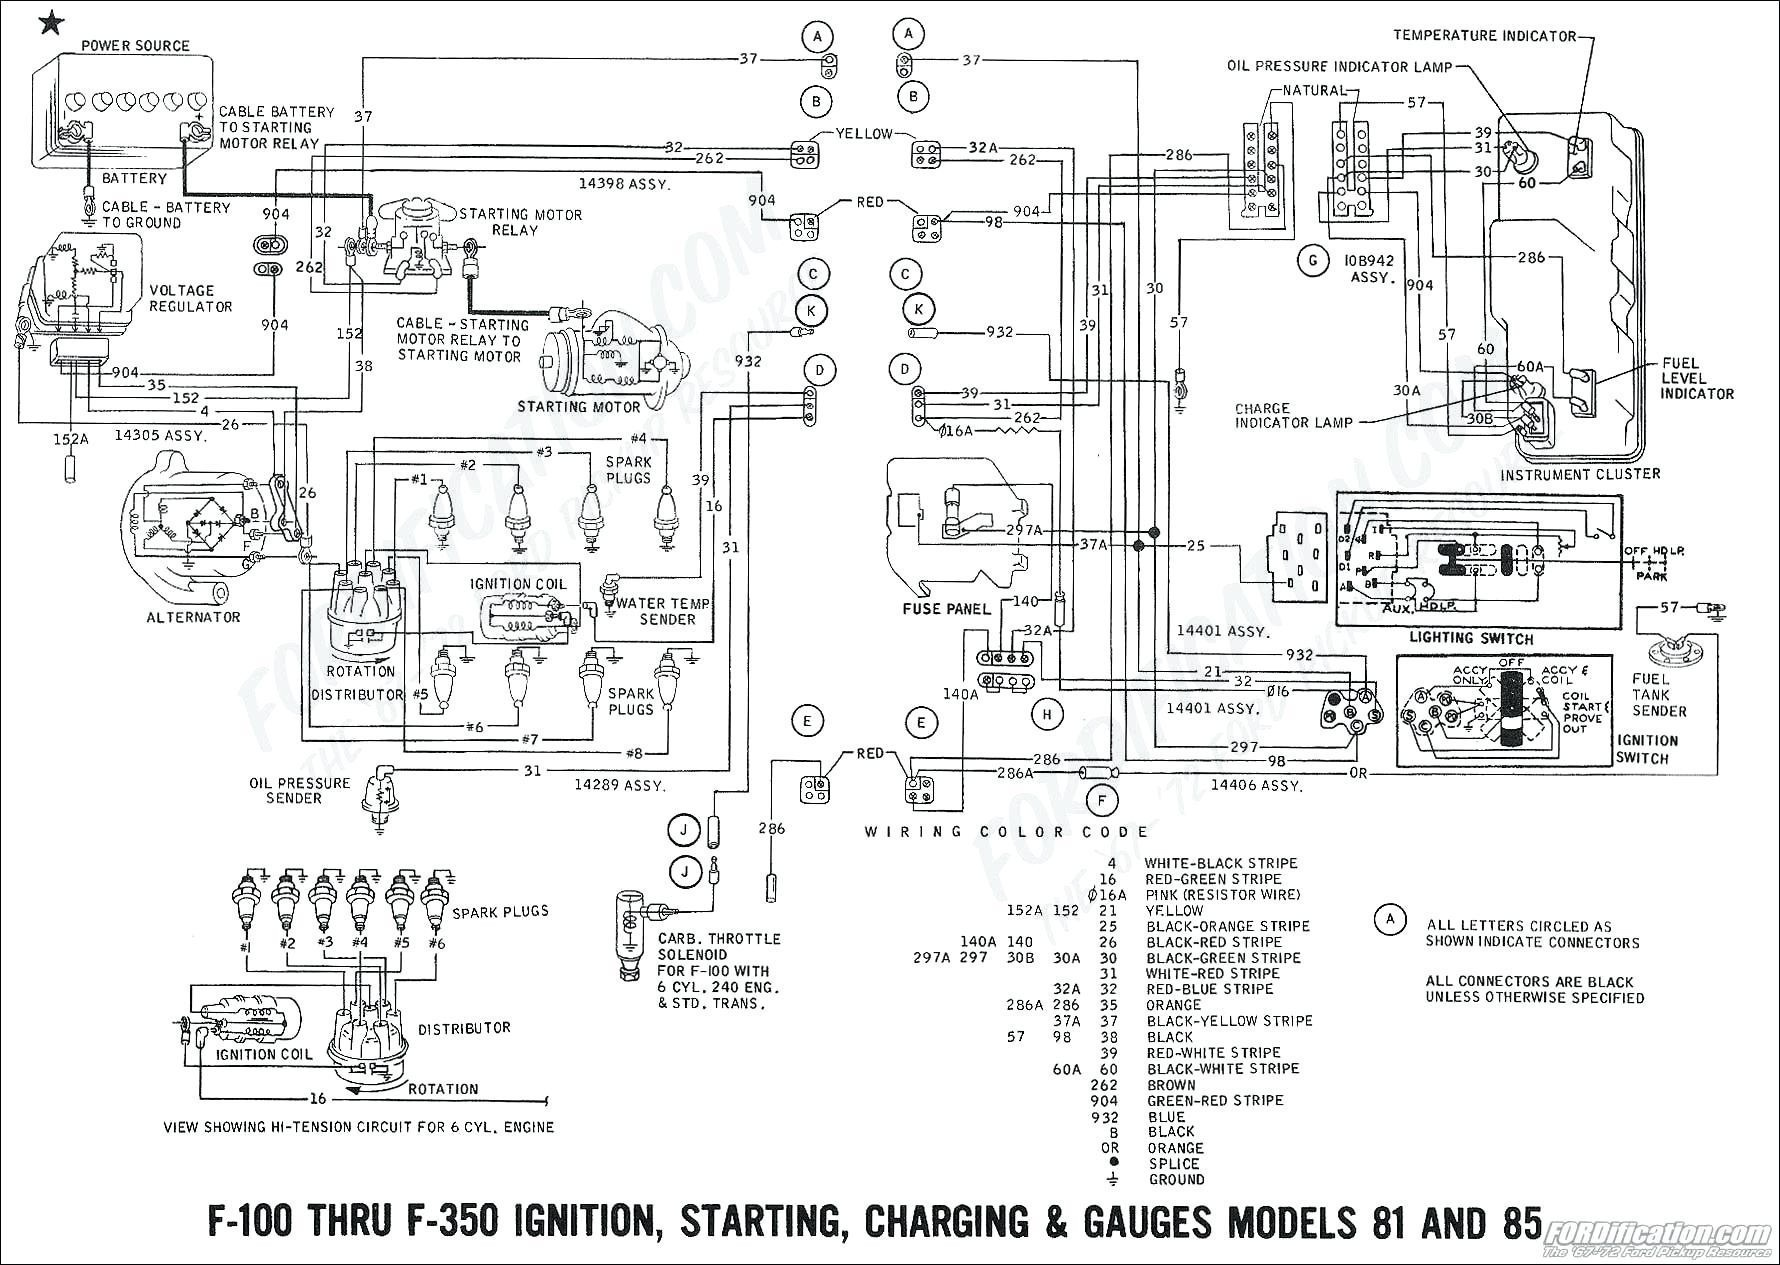 73 Idi Glow Plug Relay Wiring Diagram